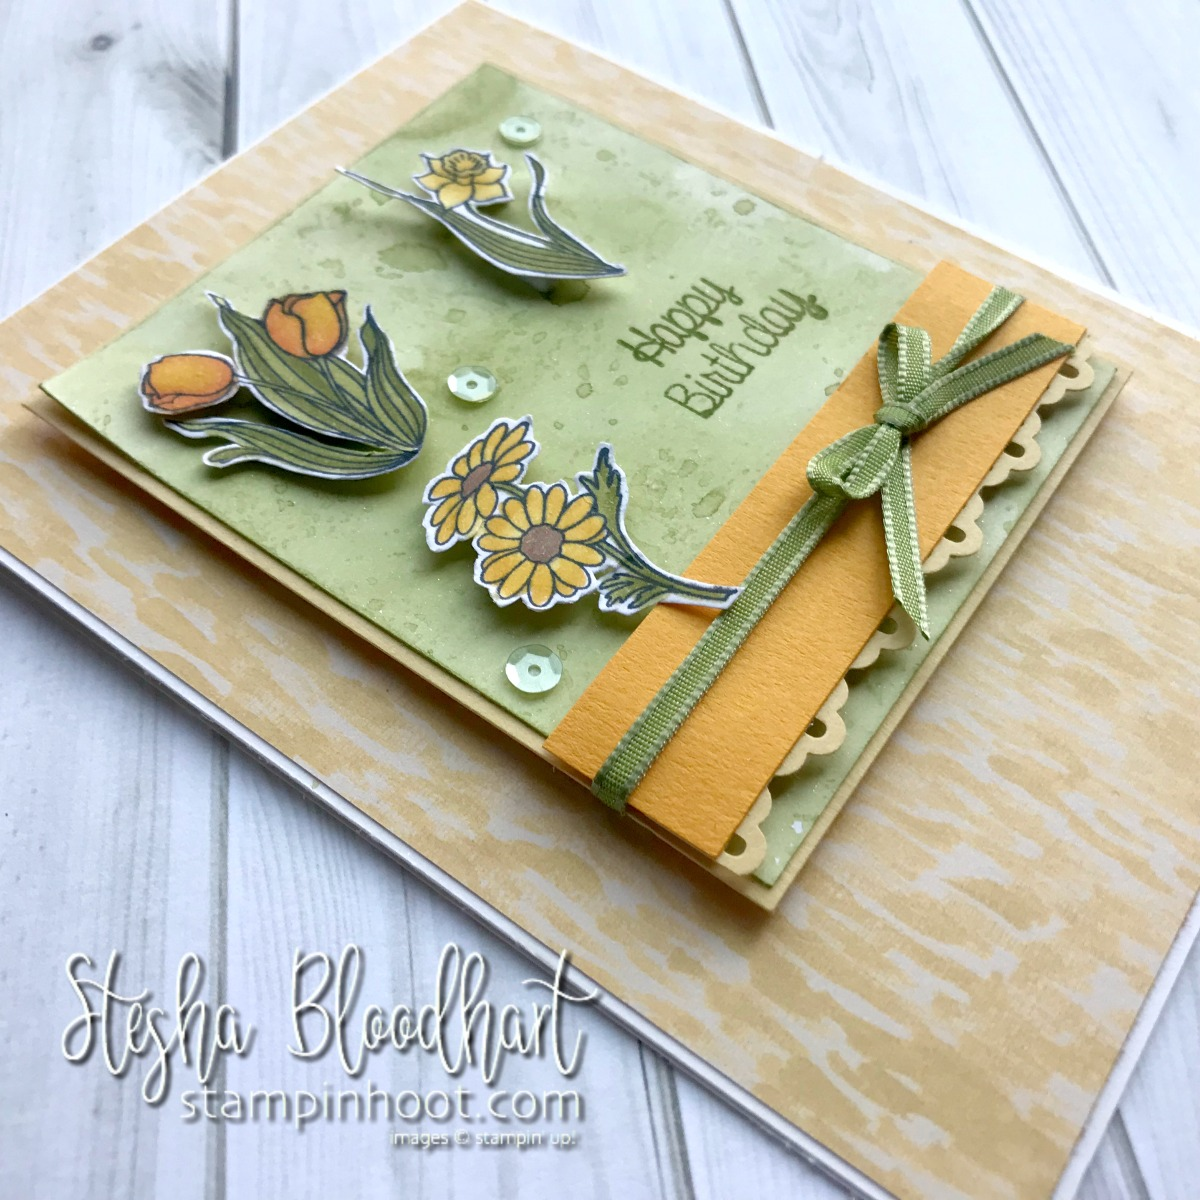 In Every Season Stamp Set by Stampin' Up! Handmade Birthday Card by Stesha Bloodhart, Stampin' Hoot! for the #gdp146 Sketch Challenge #steshabloodhart #stampinhoot